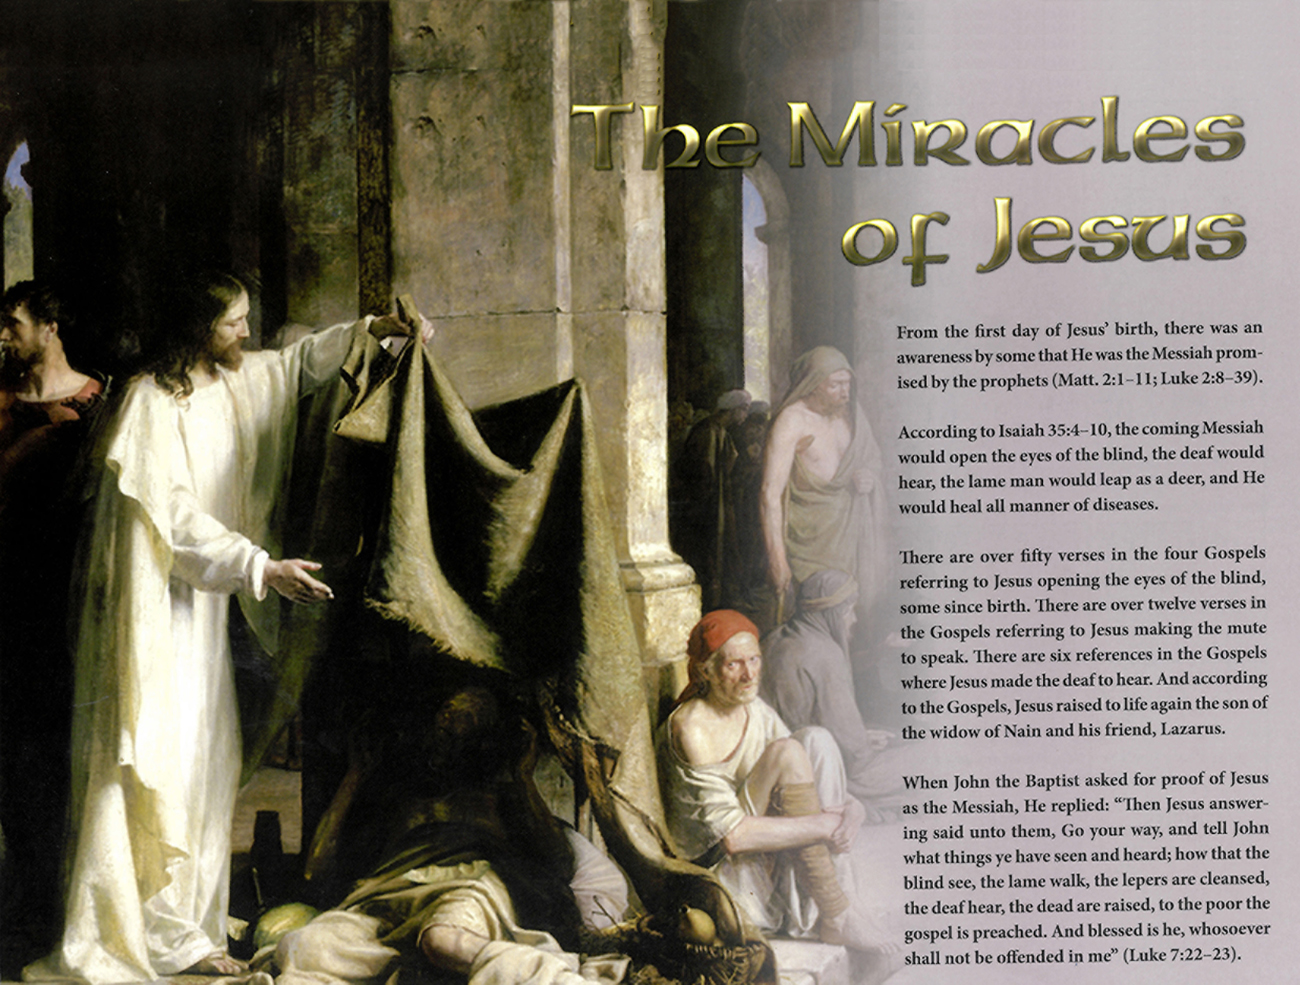 2013 Prophecy Calendar: May - The Miracles of Jesus